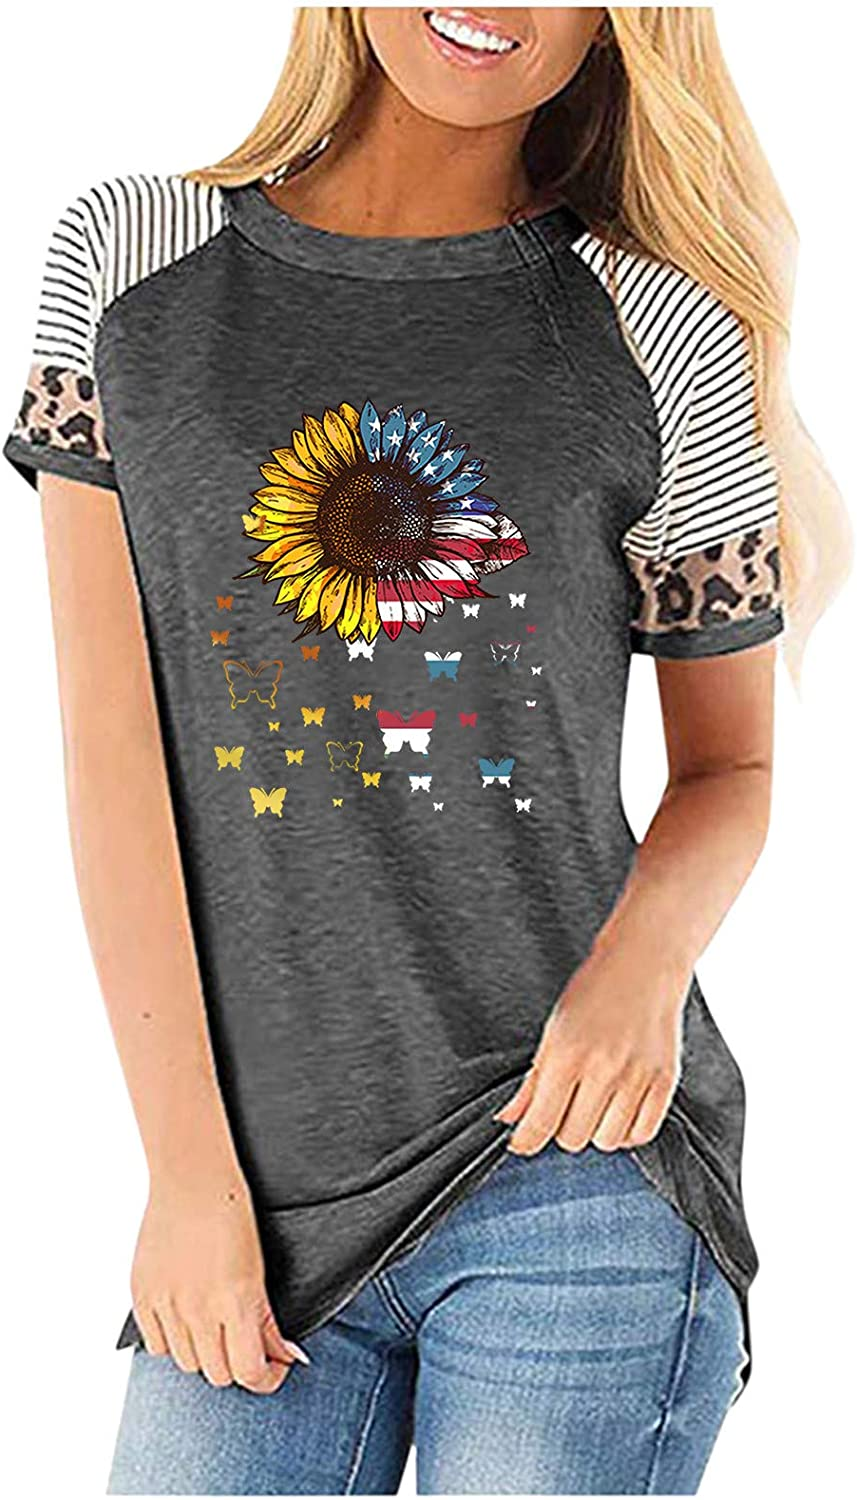 shaozheny Womens Loose T-Shirts Cute Leopard Printing Casual Short Sleeves Blouses Tops Flower Graphic Tunic Tees